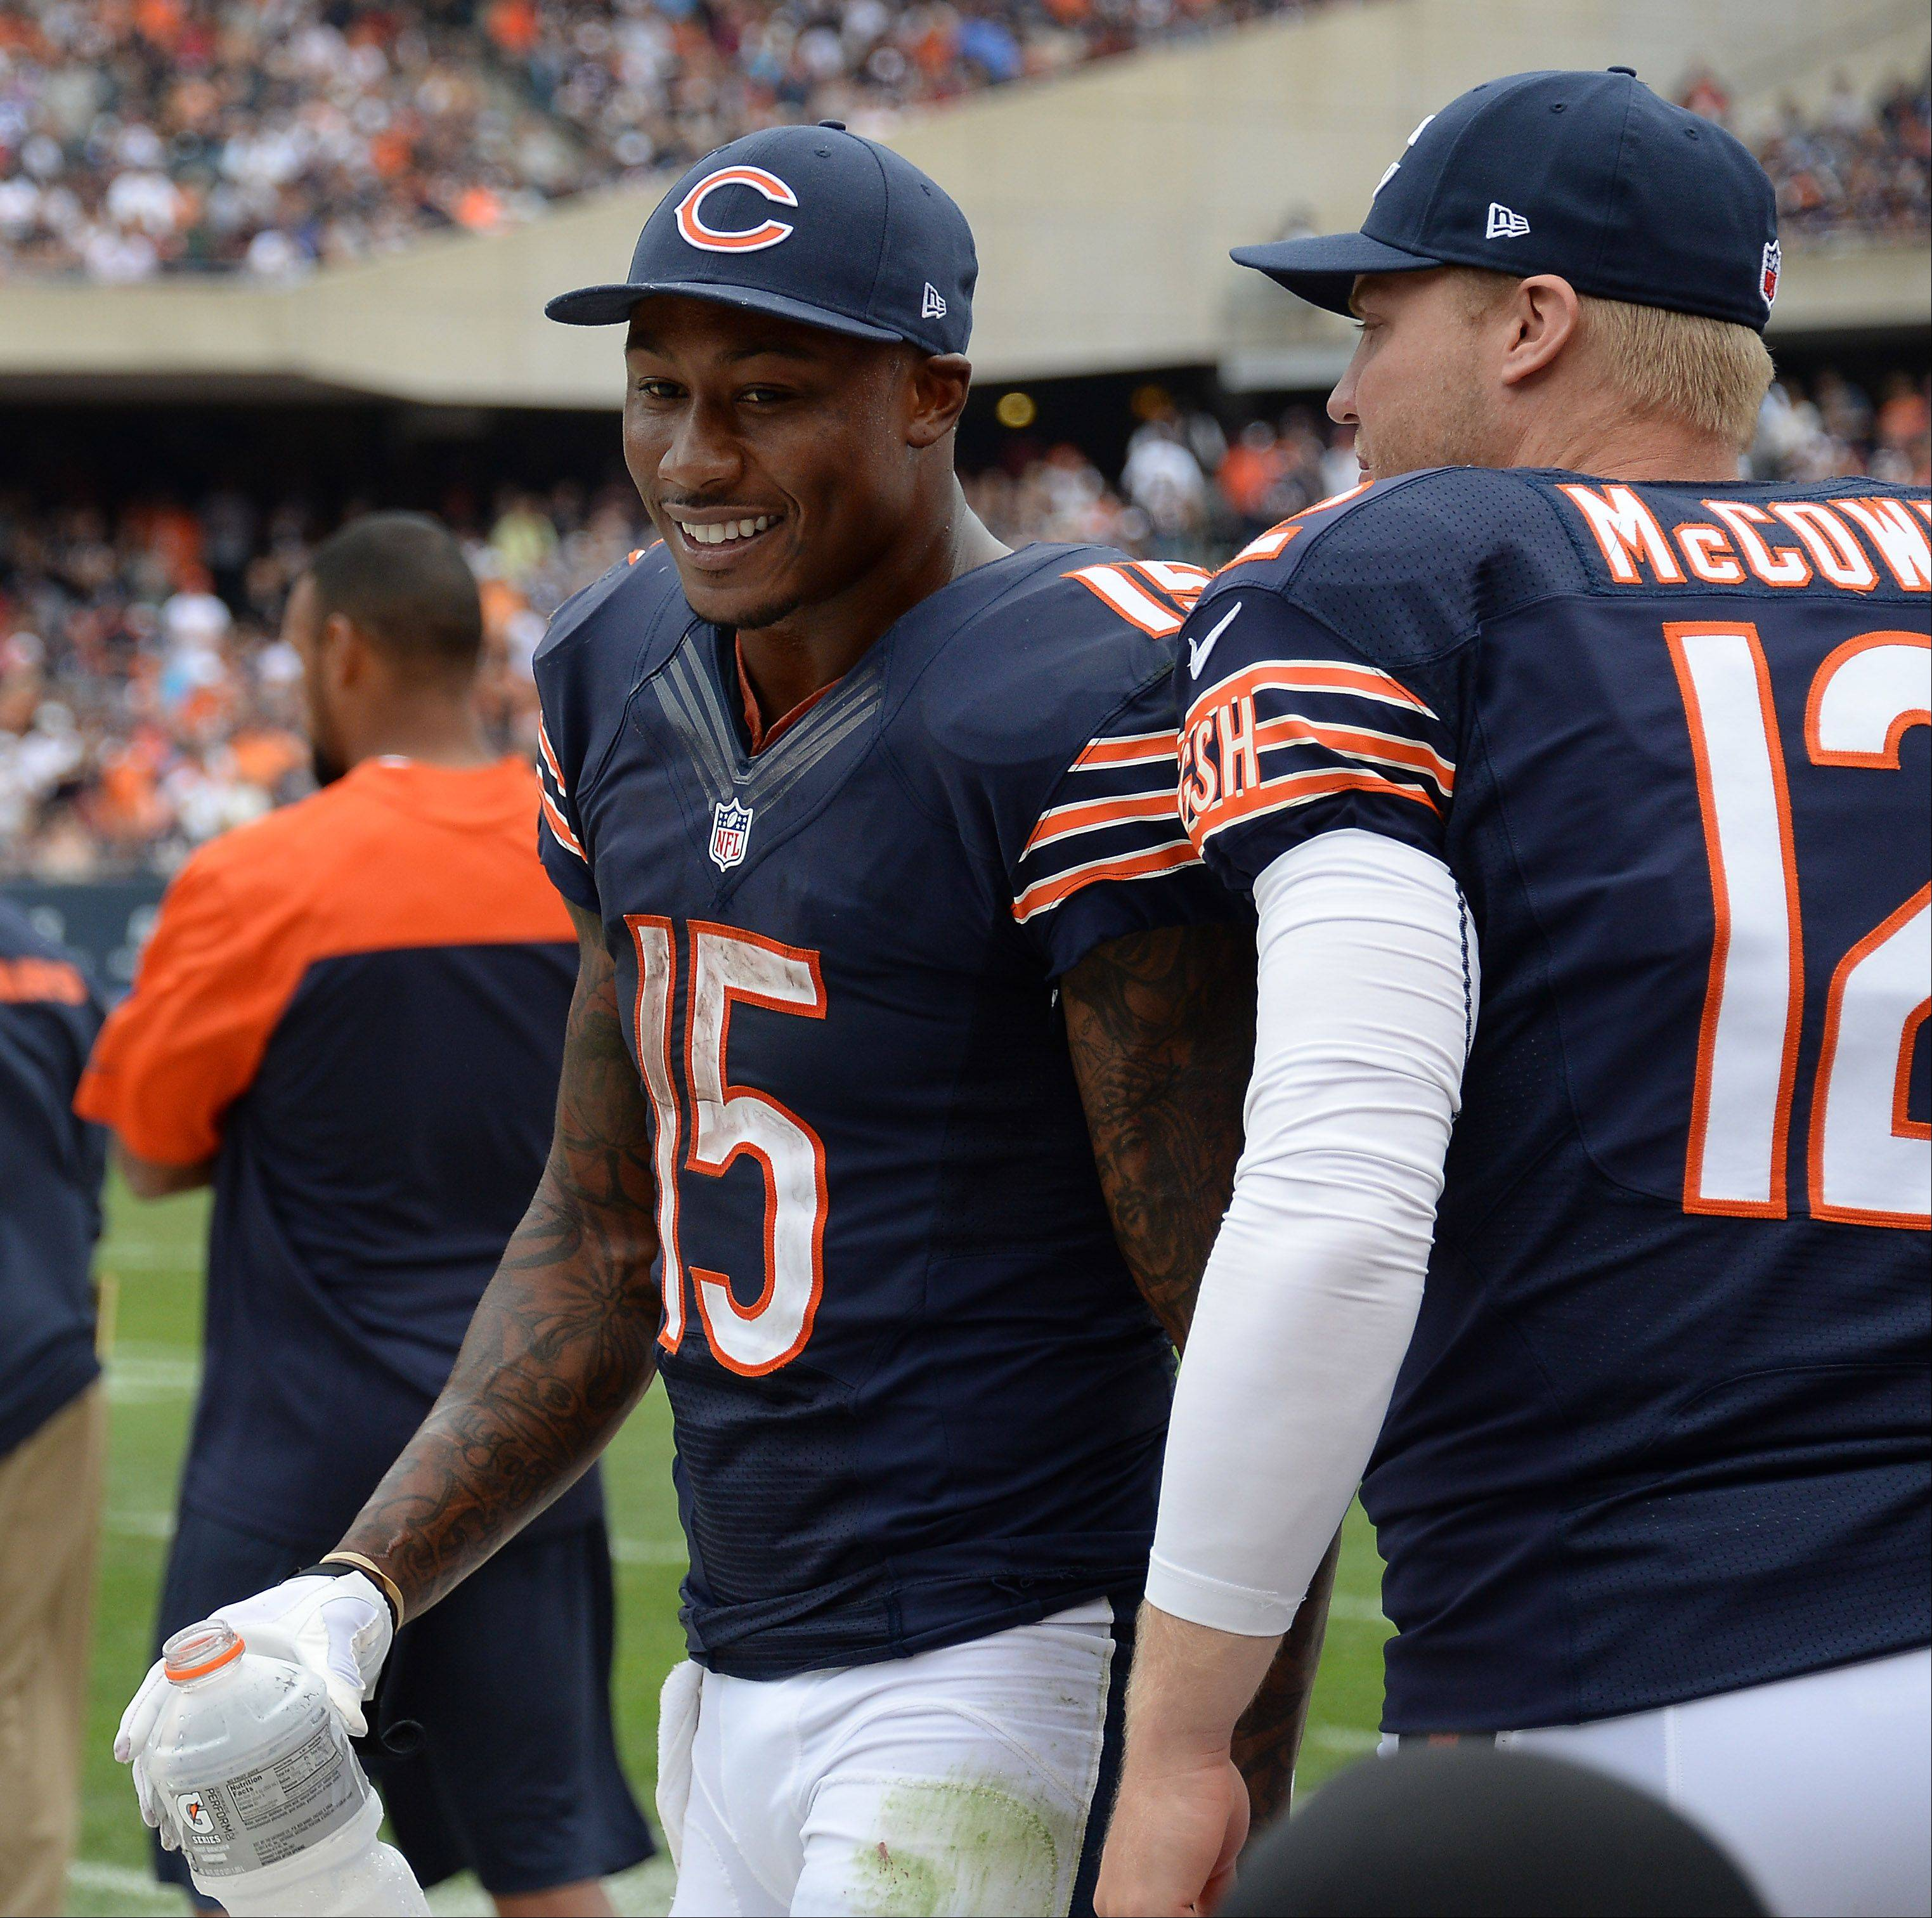 Chicago Bears Brandon Marshall is all smiles on the sidelines after scoring his second half touchdown in the season opener against the Cincinnati Bengals at Soldier Field in Chicago.